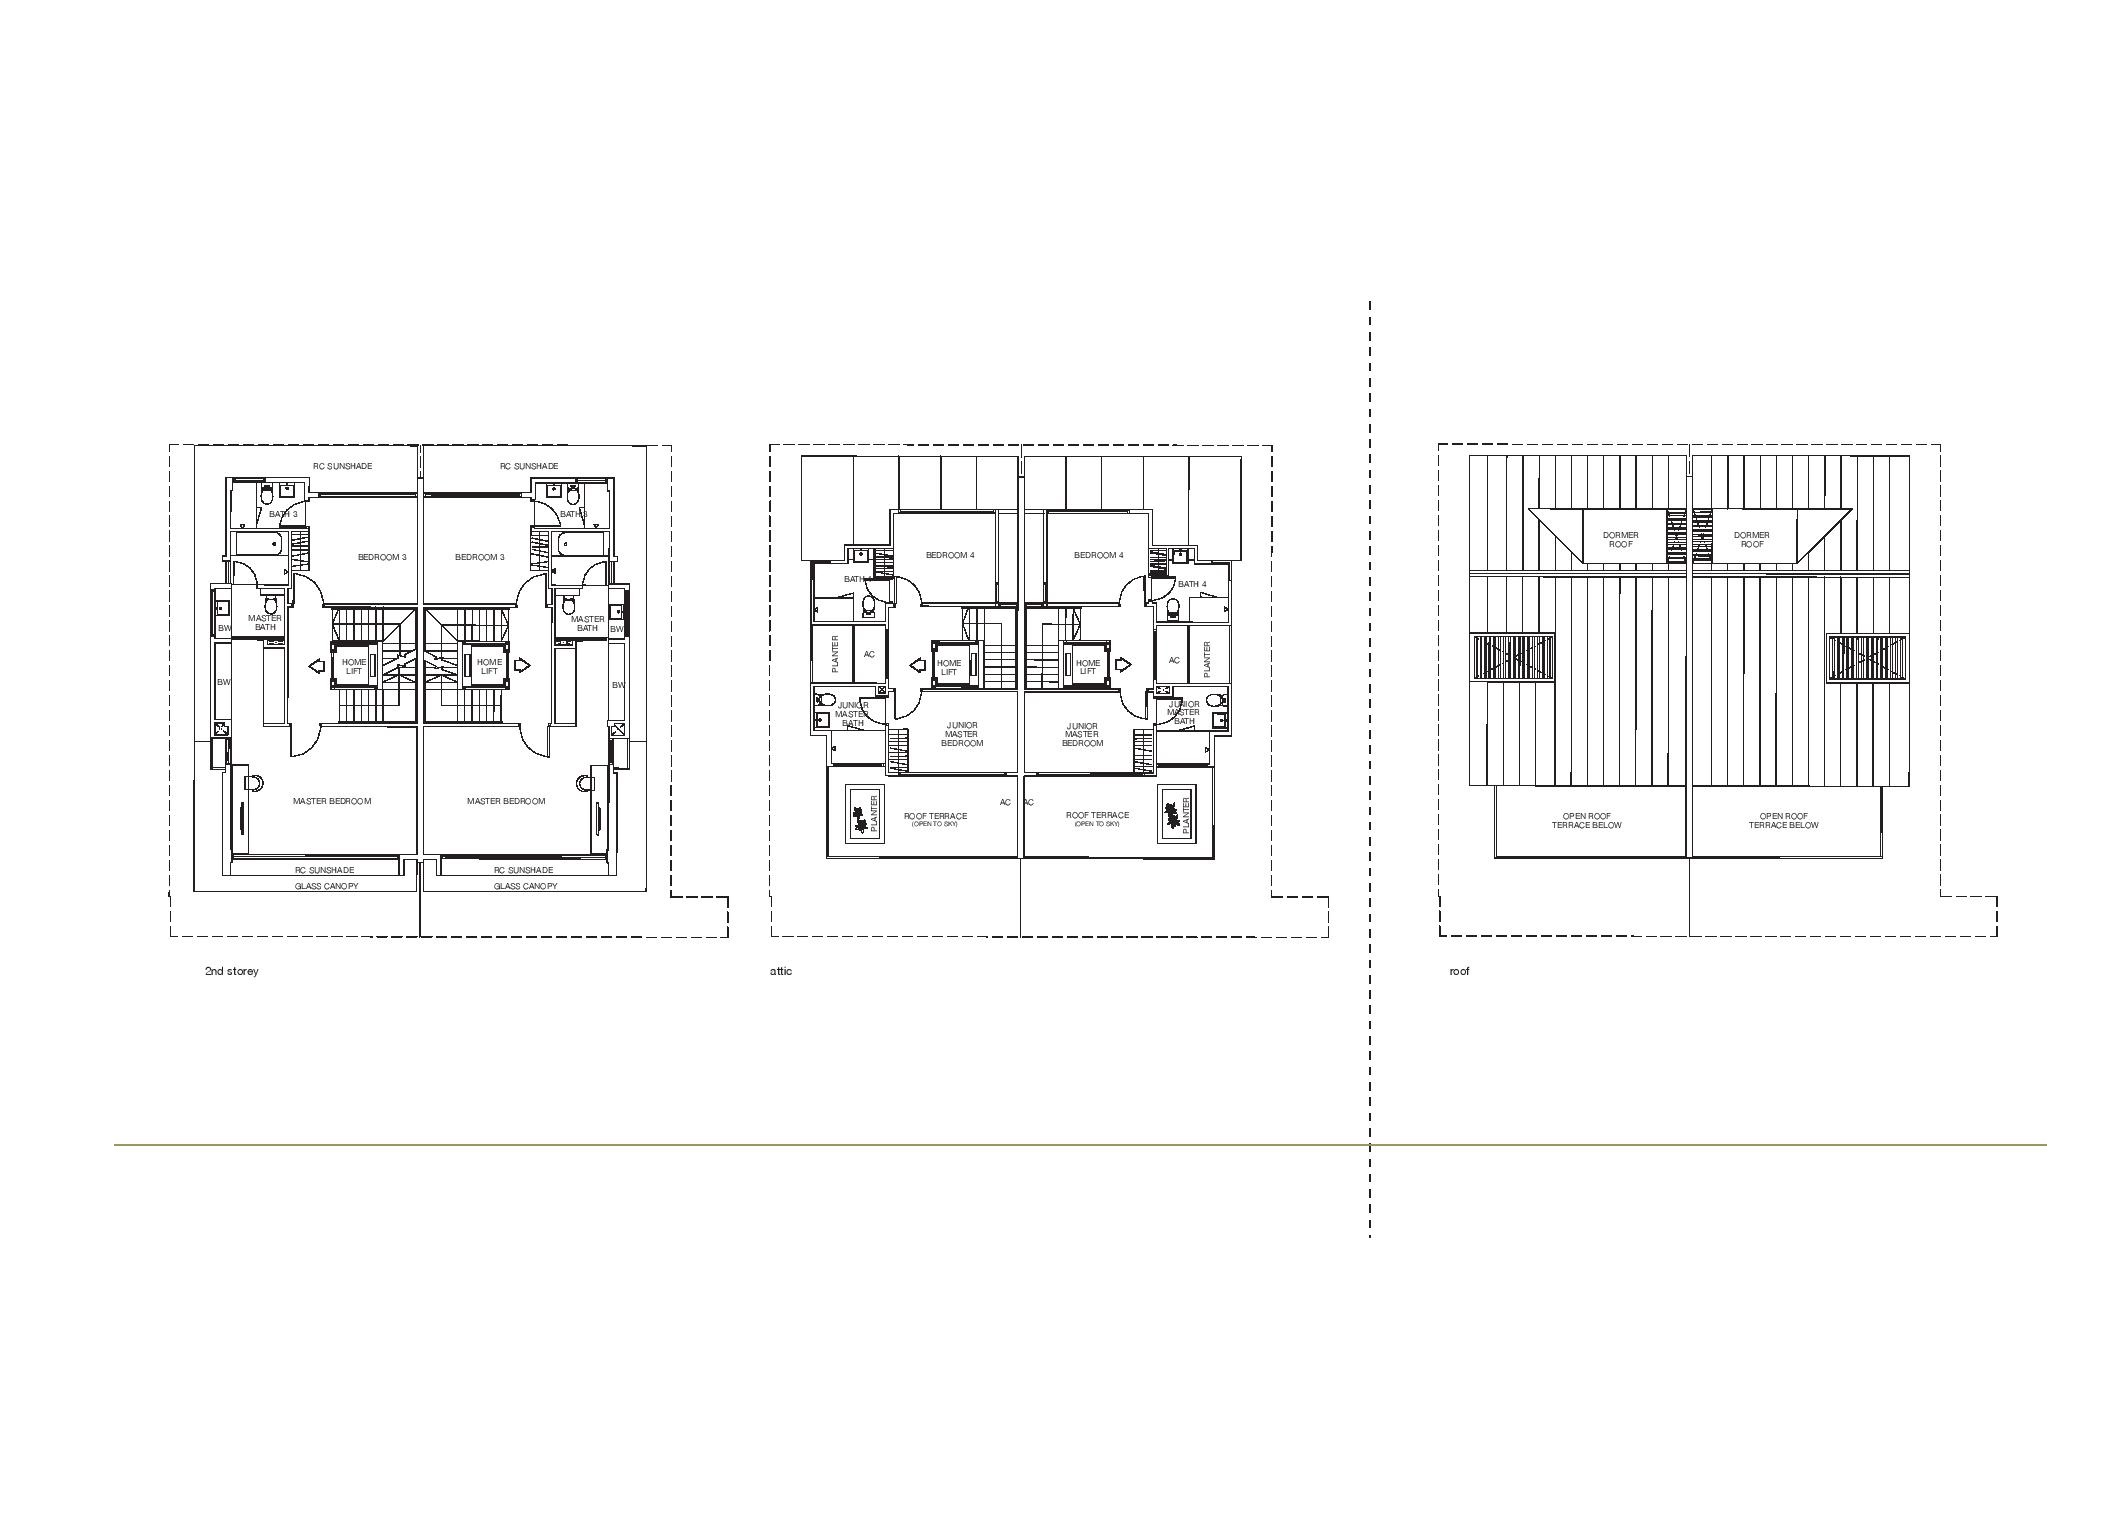 Chancery Hill Villas House 12K/12L 2nd Level, Attic and Roof Floor Plans